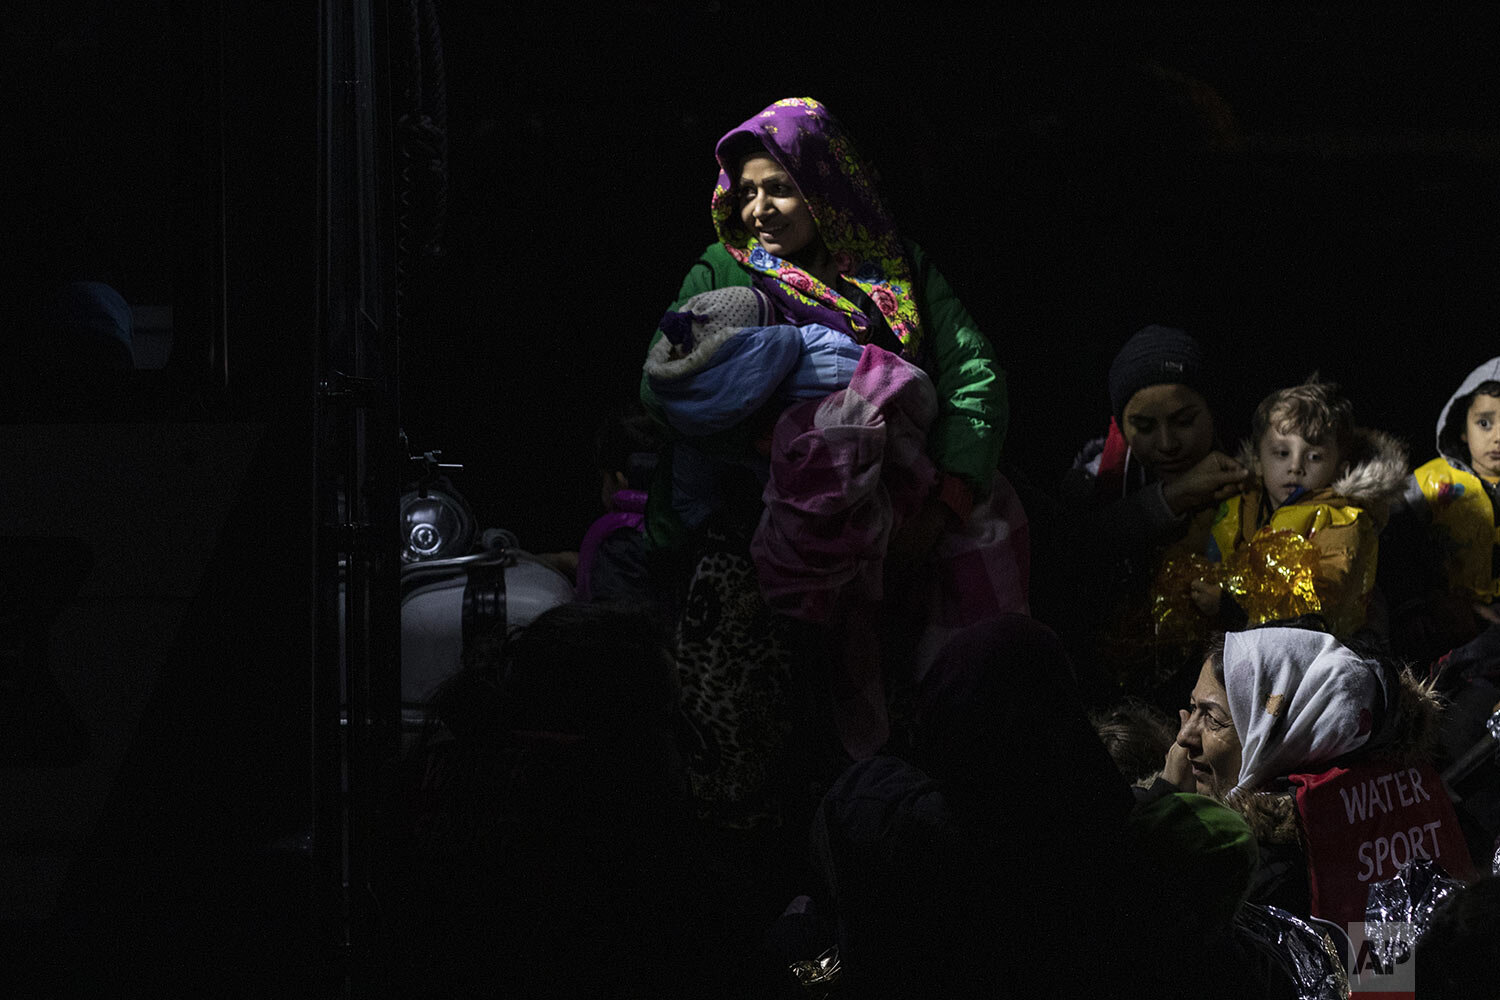 An Afghan woman holds her baby following a rescue operation by a Frontex patrol vessel as she arrives with other migrants at the harbor of Skala Sikamias, on the Greek island of Lesbos, early Sunday Oct. 6, 2019. (AP Photo/Petros Giannakouris)